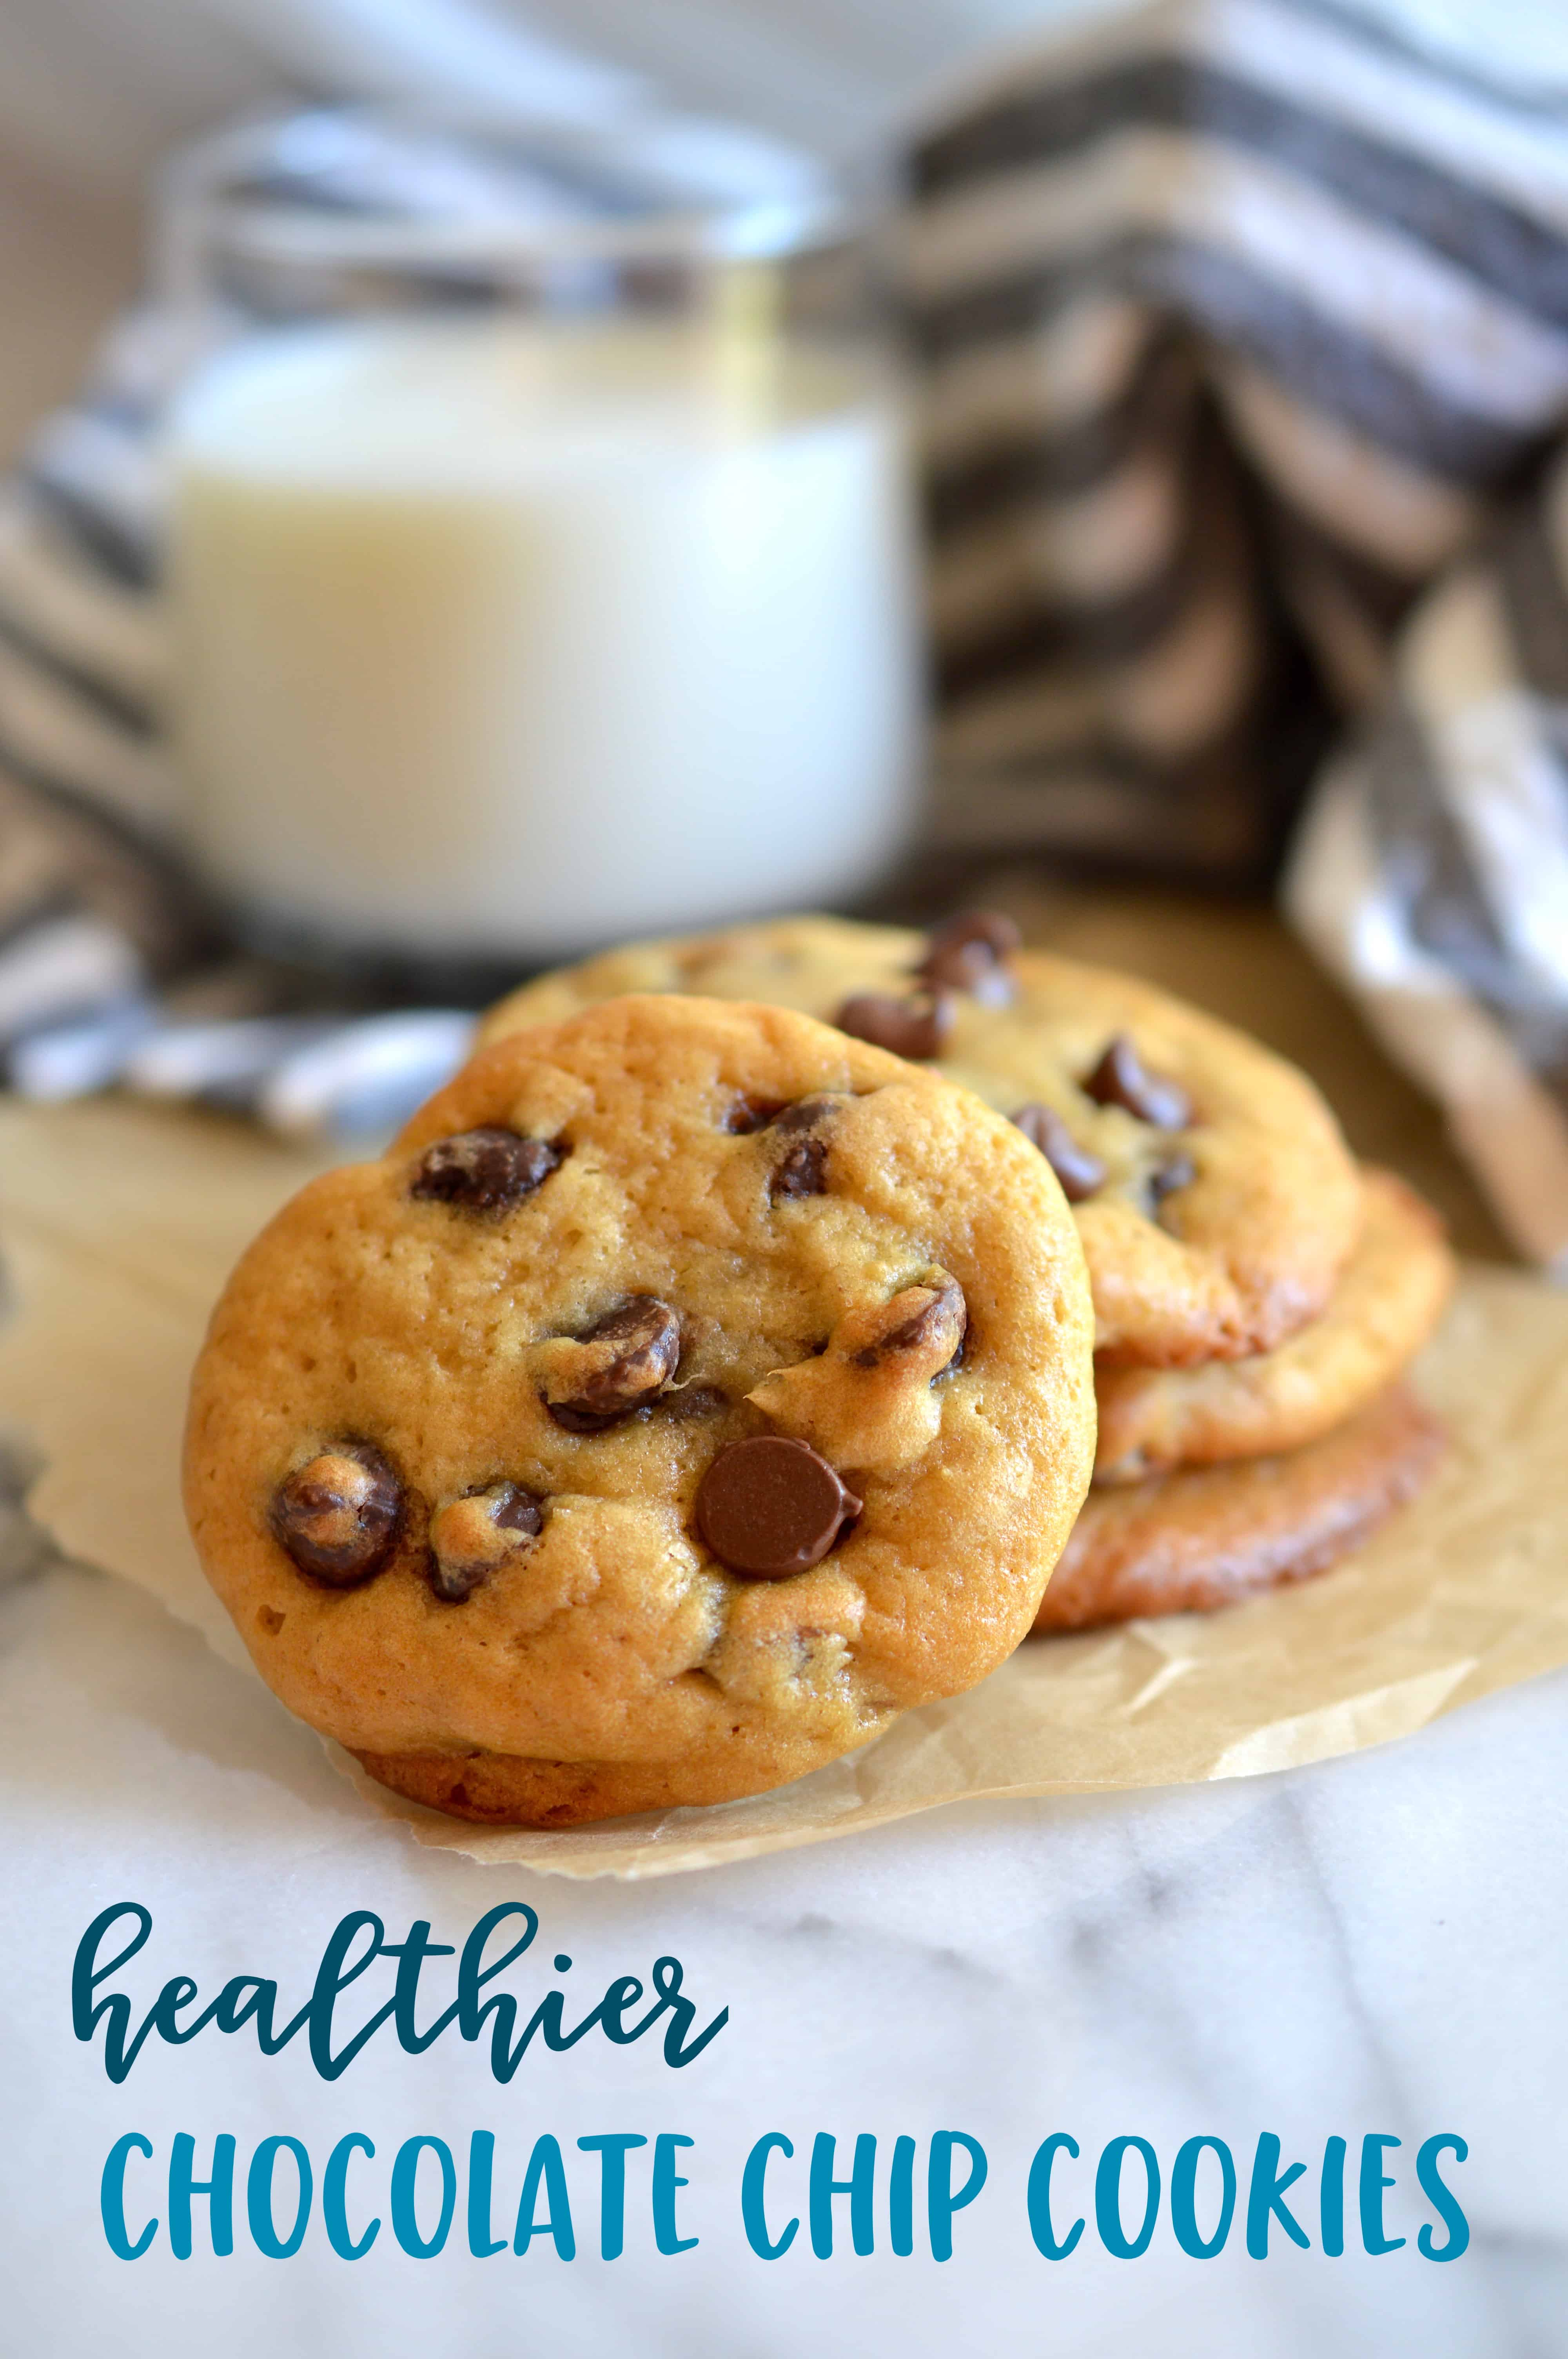 Lighten up the classic chocolate chip cookie by using less butter. Super soft and filled with chocolate chips, these Healthier Greek Yogurt Chocolate Chip Cookies are a crowd favorite! #chocolatechip #cookies #chocolatechipcookies #baking #dessert #chocolate